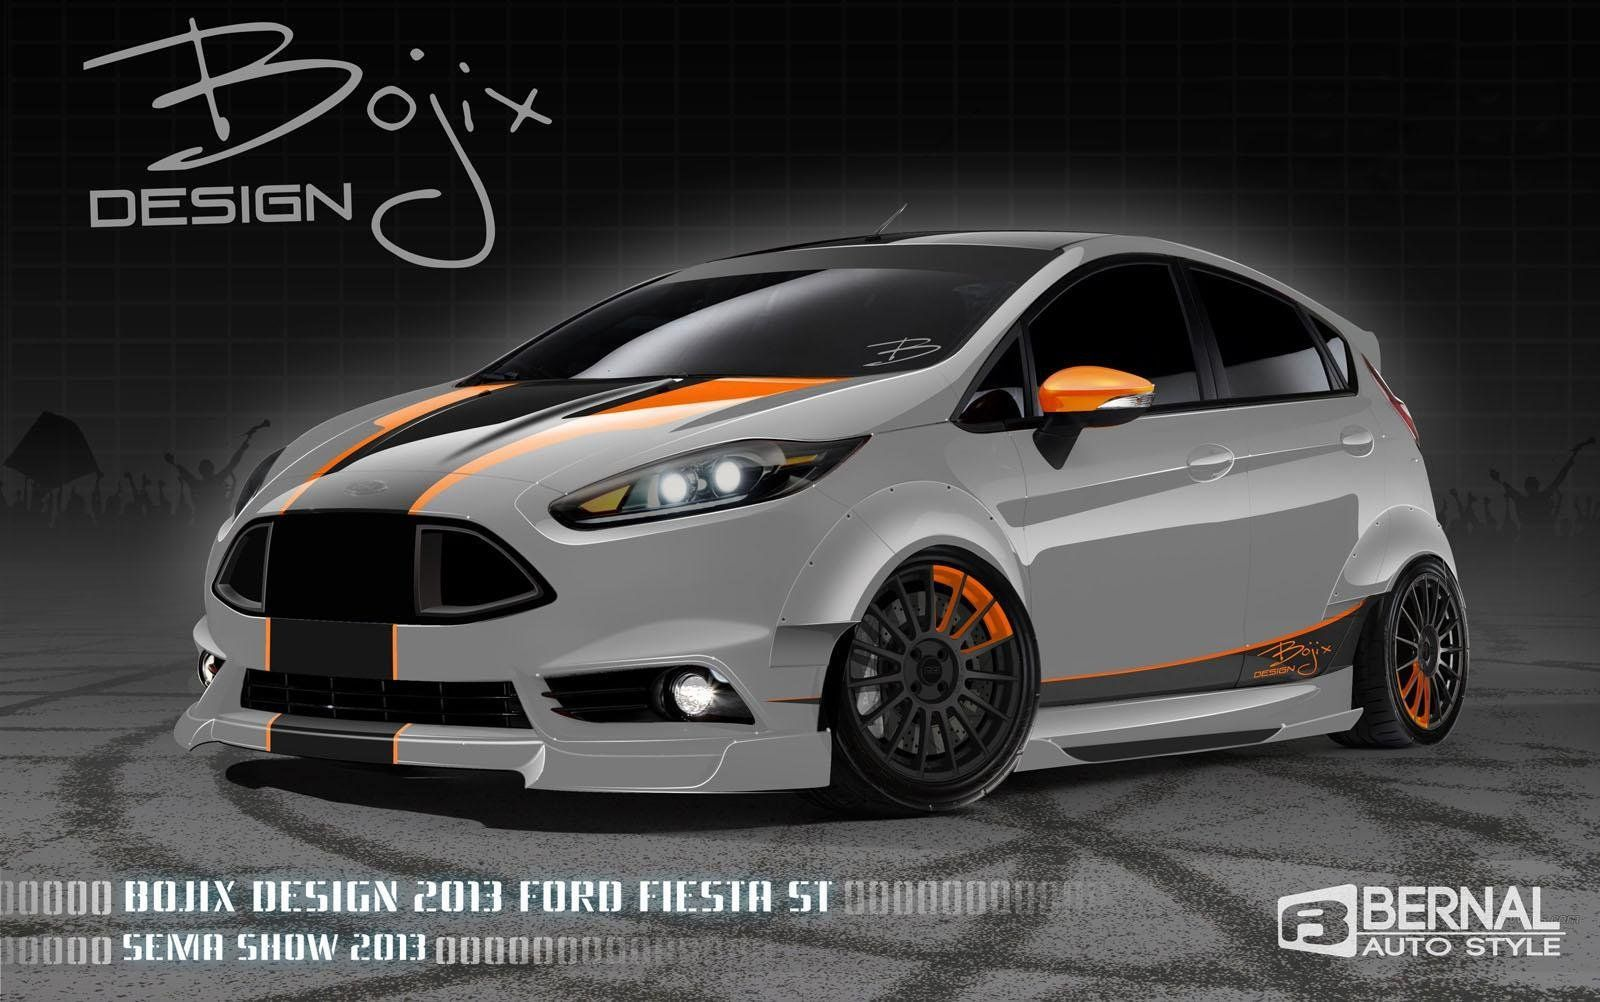 2014 ford fiesta st by bojix design picture doc529170